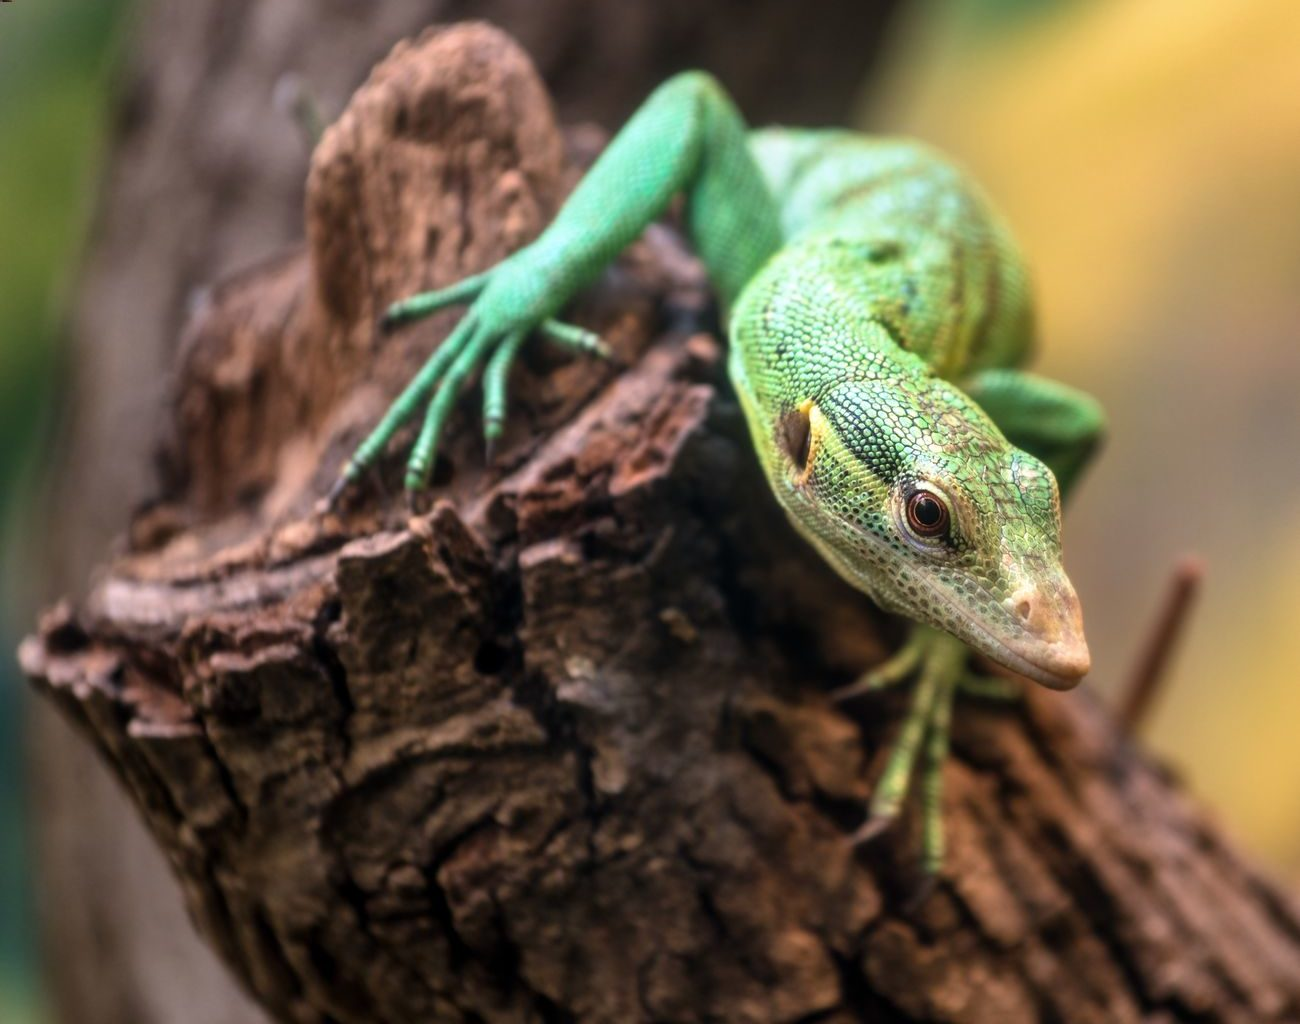 An adult green tree monitor climbing on a branch